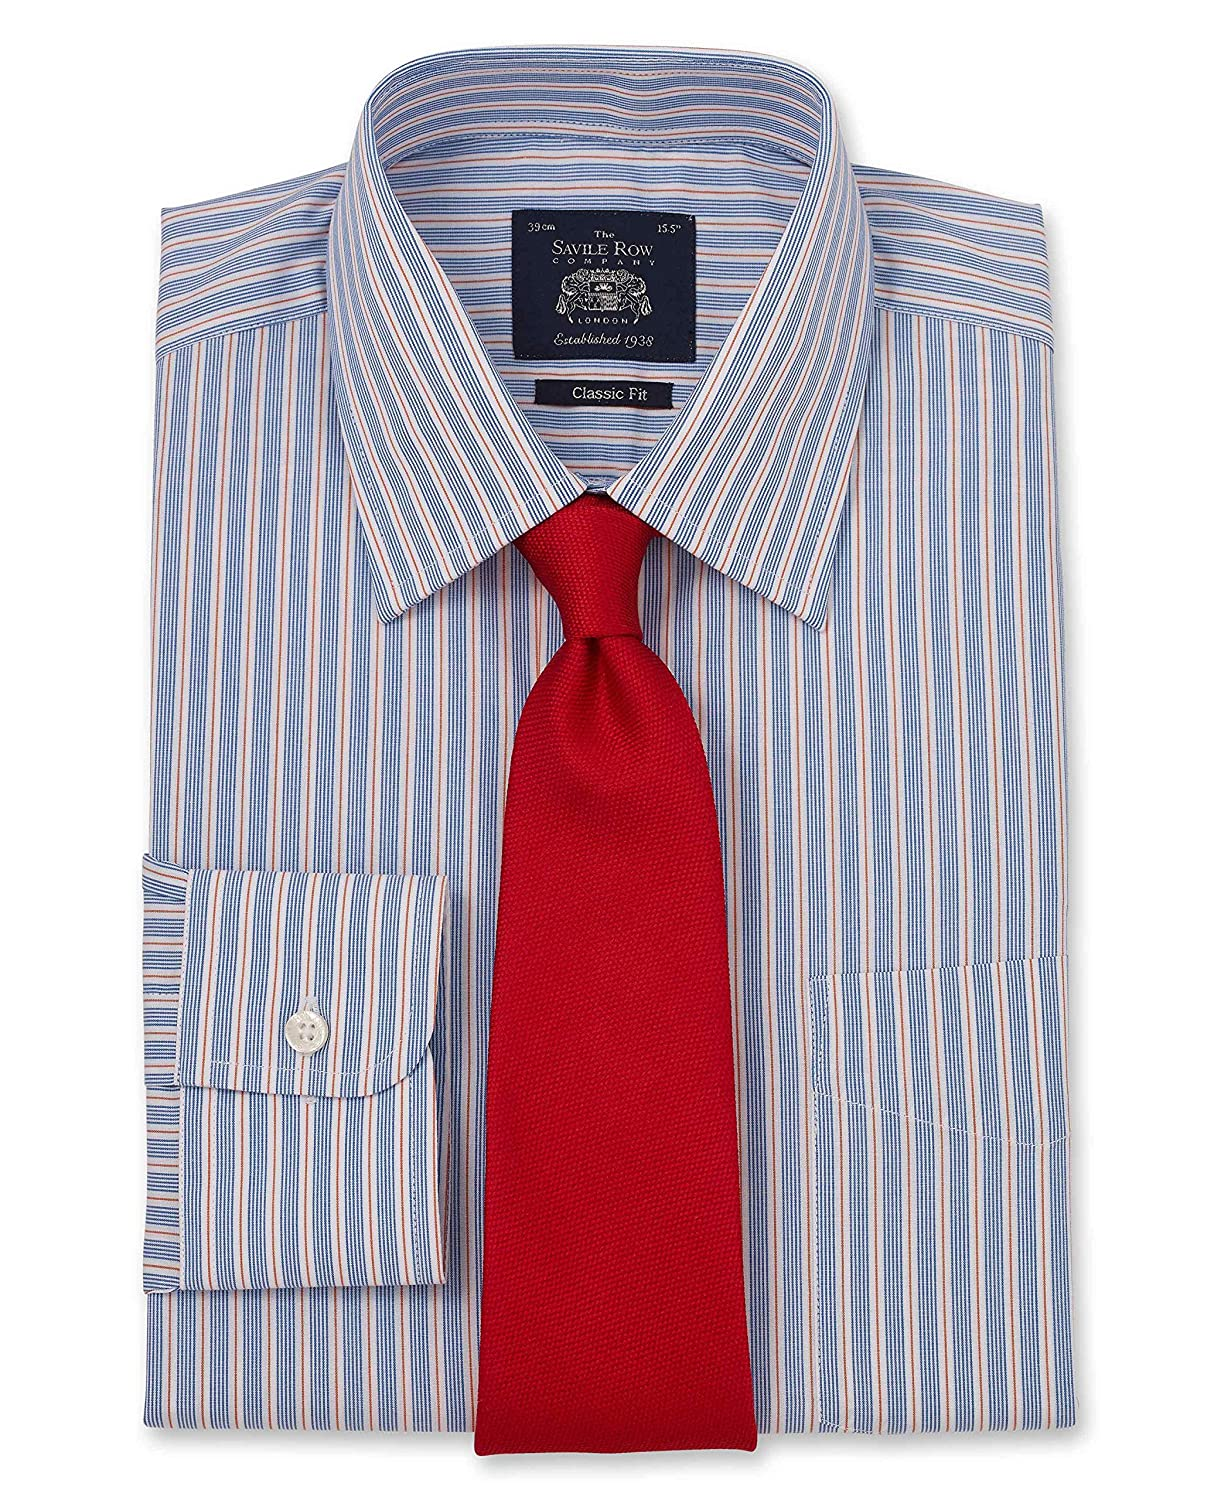 TALLA 15 Standard. Savile Row Men's Navy Red Multi Stripe Classic Fit Shirt - Single Cuff